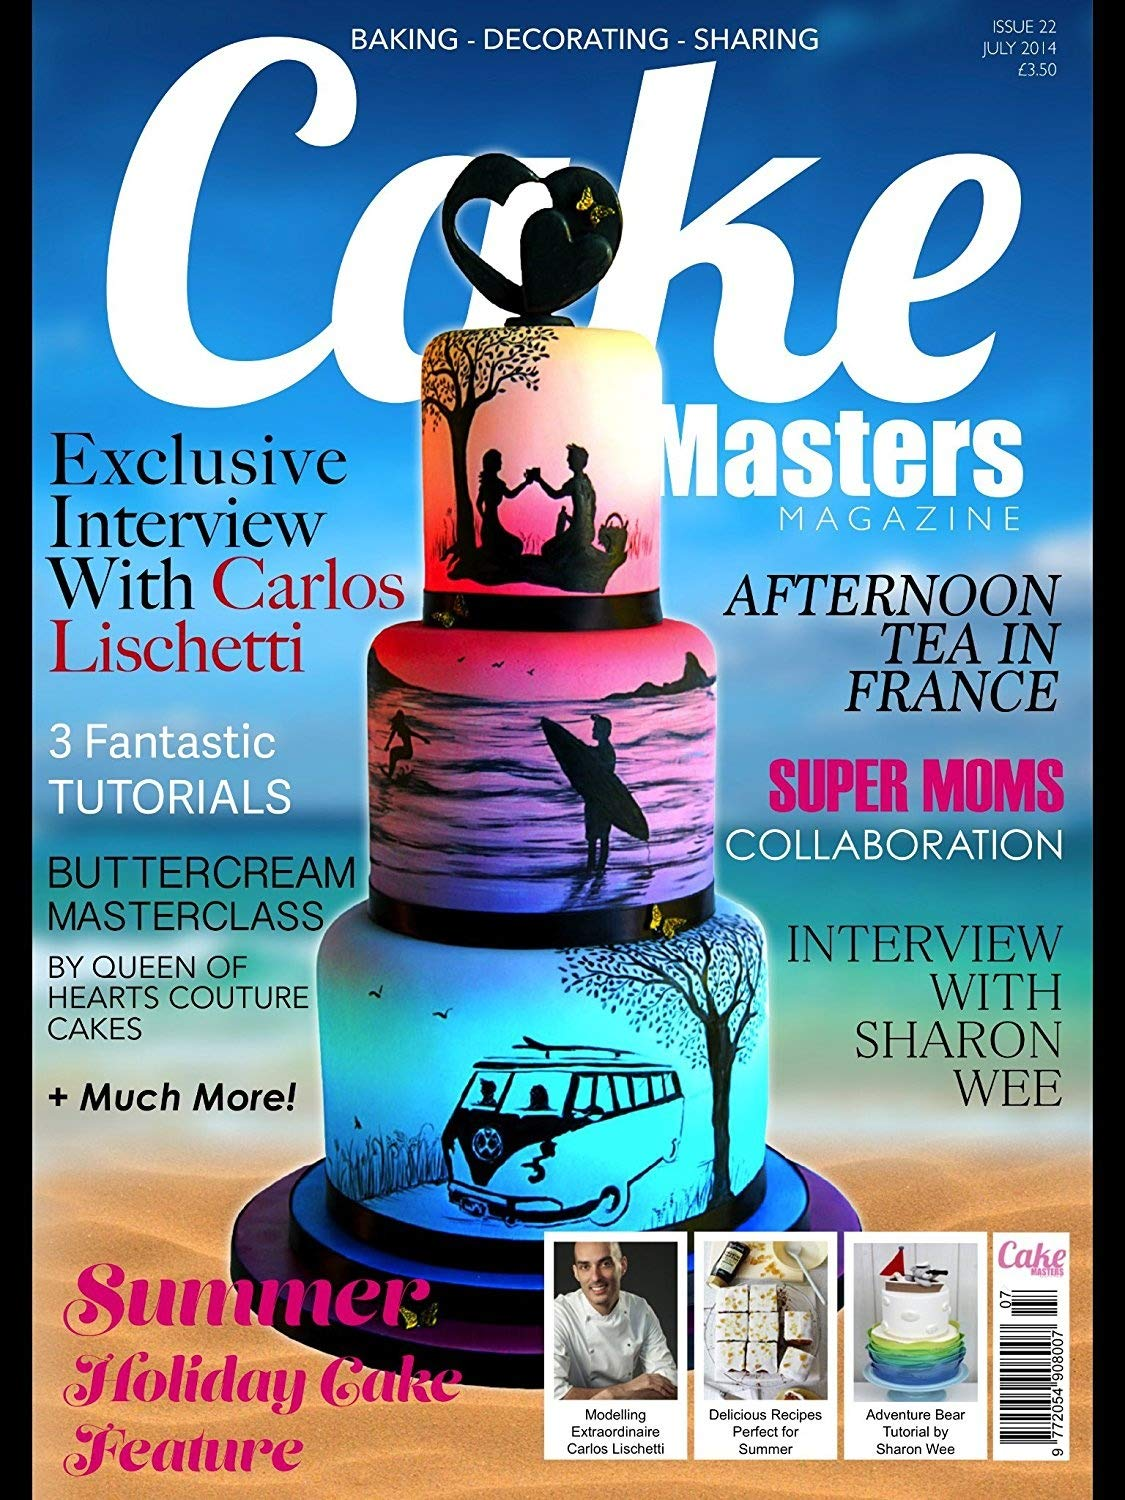 Ideal for Cake Decoration with 5 Speed Settings Award Winning Clairella Cakes Airbrush and Compressor